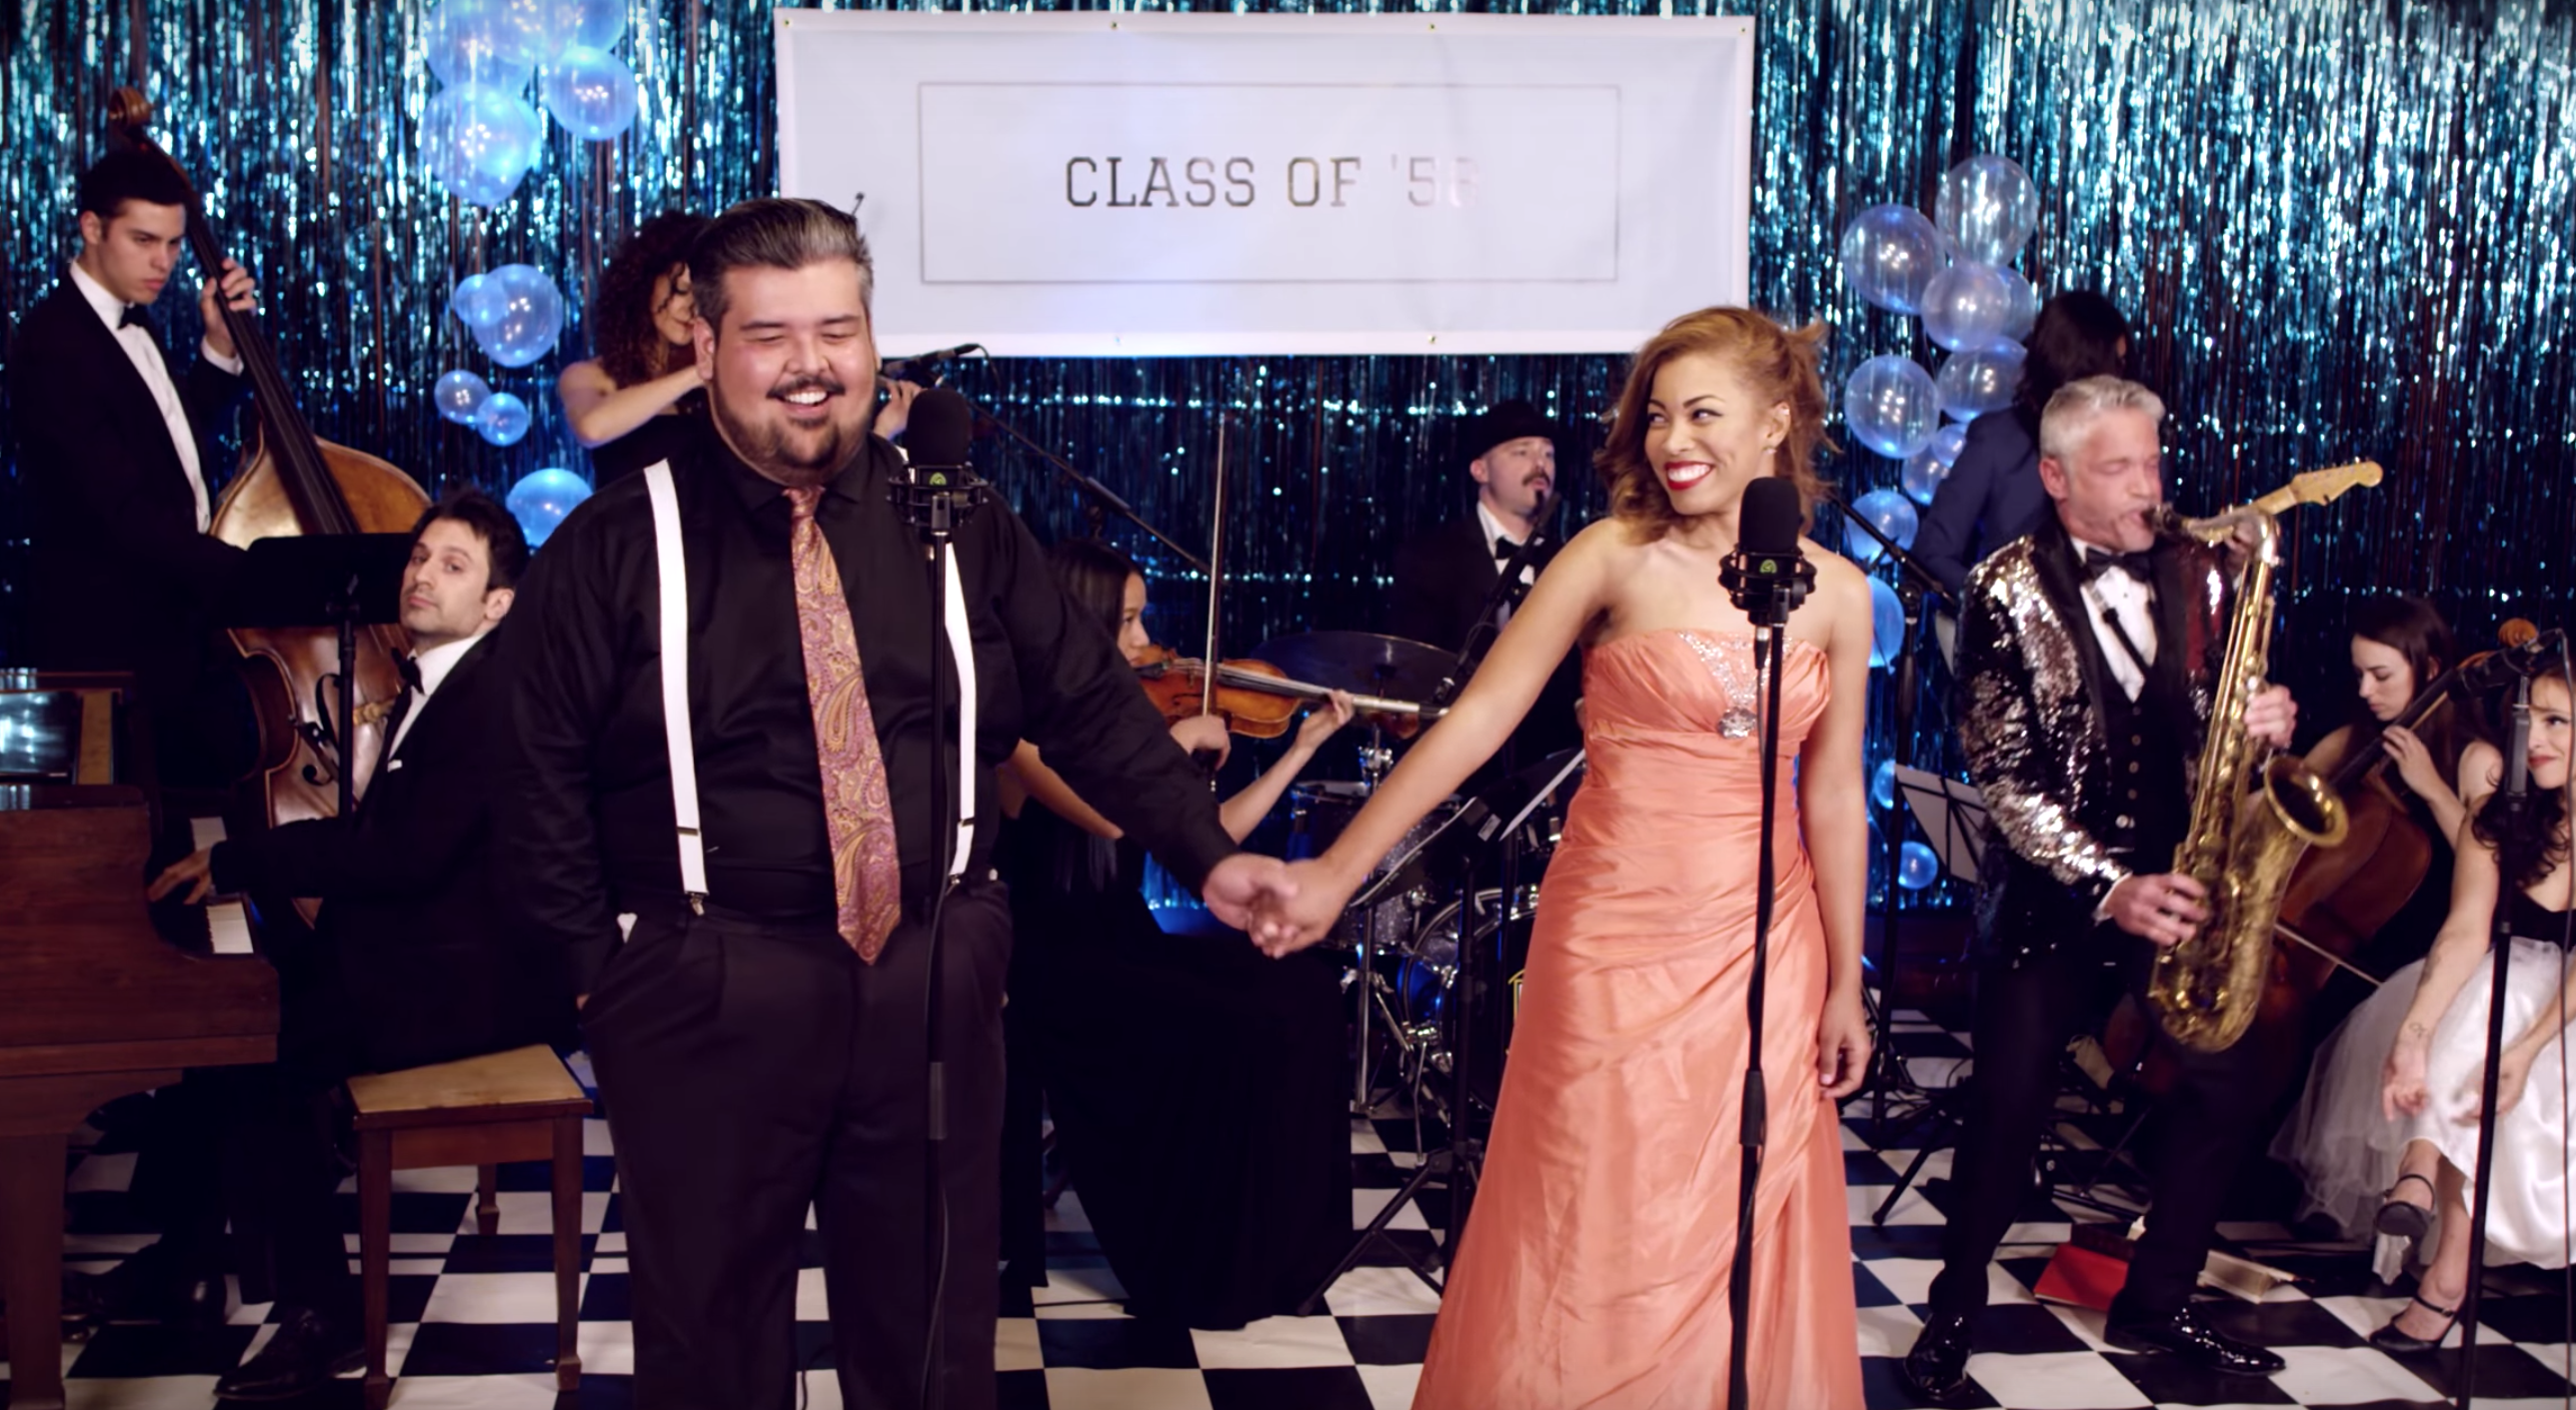 Perfect Duet – Ed Sheeran & Beyonce ('50s Prom Cover) ft. Mario Jose, India Carney & Dave Koz